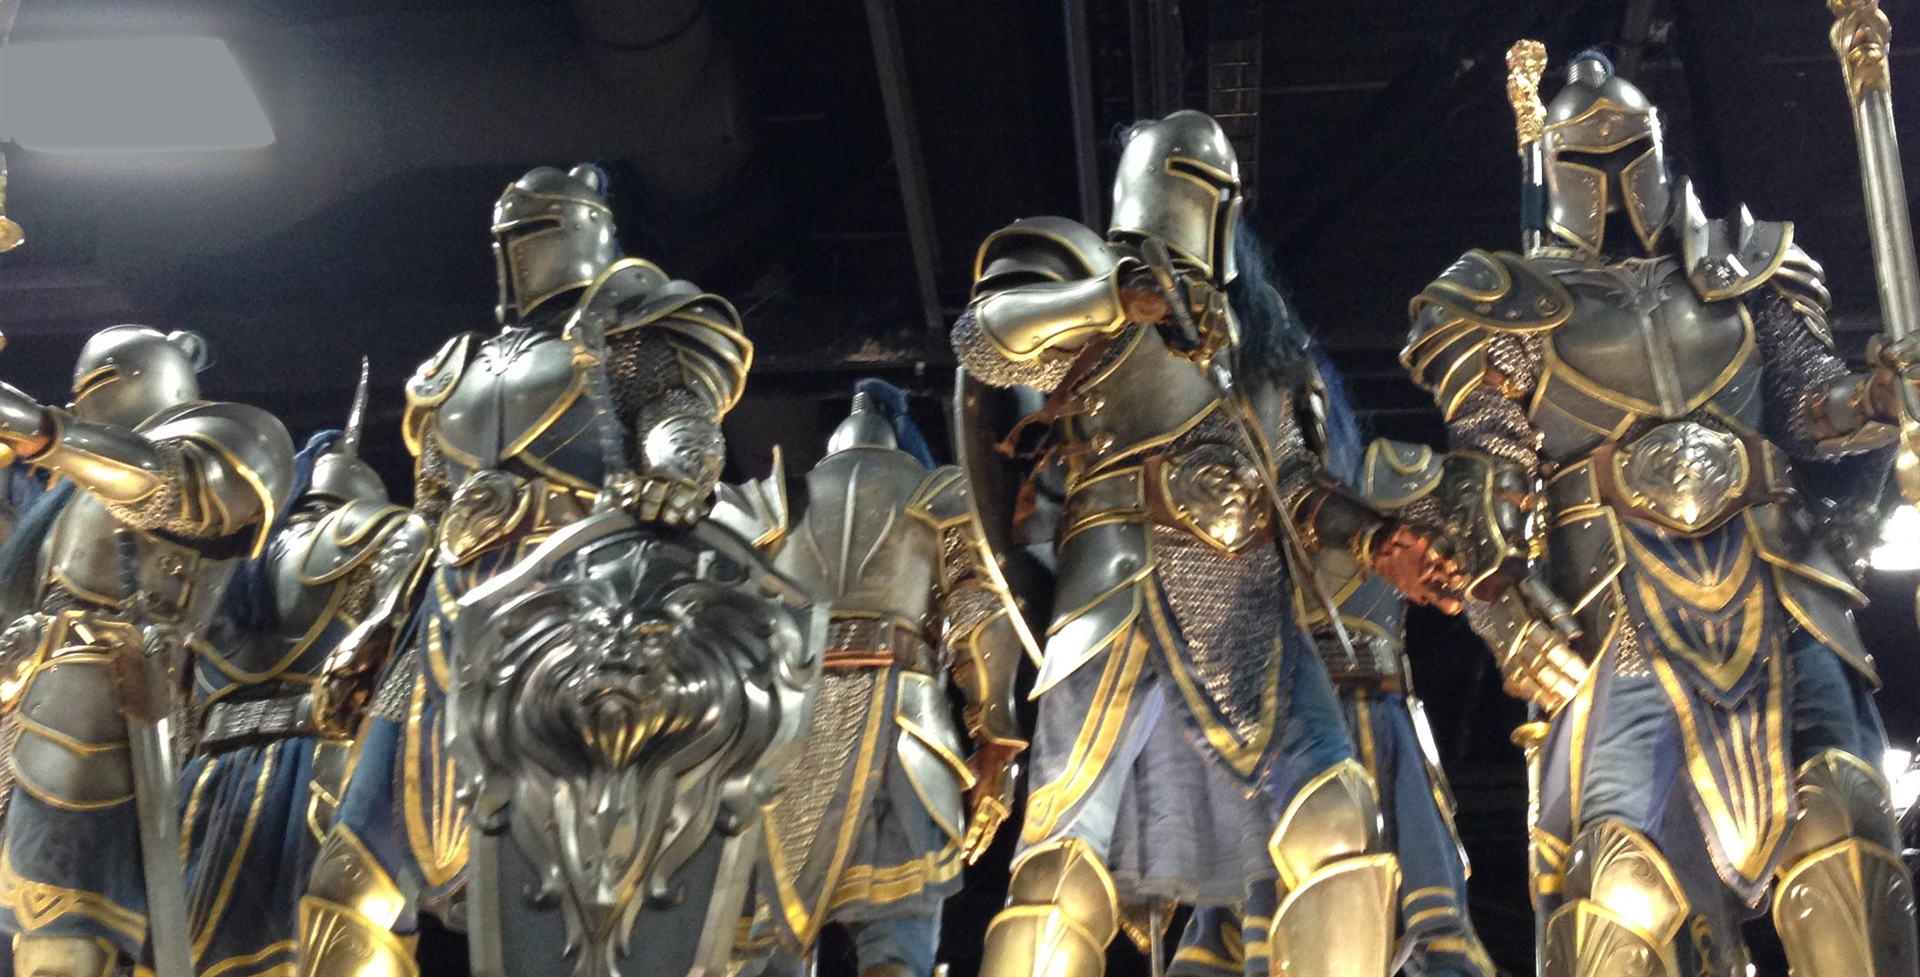 Warcraft Movie New Images From The Movie Set Gt GamersBook